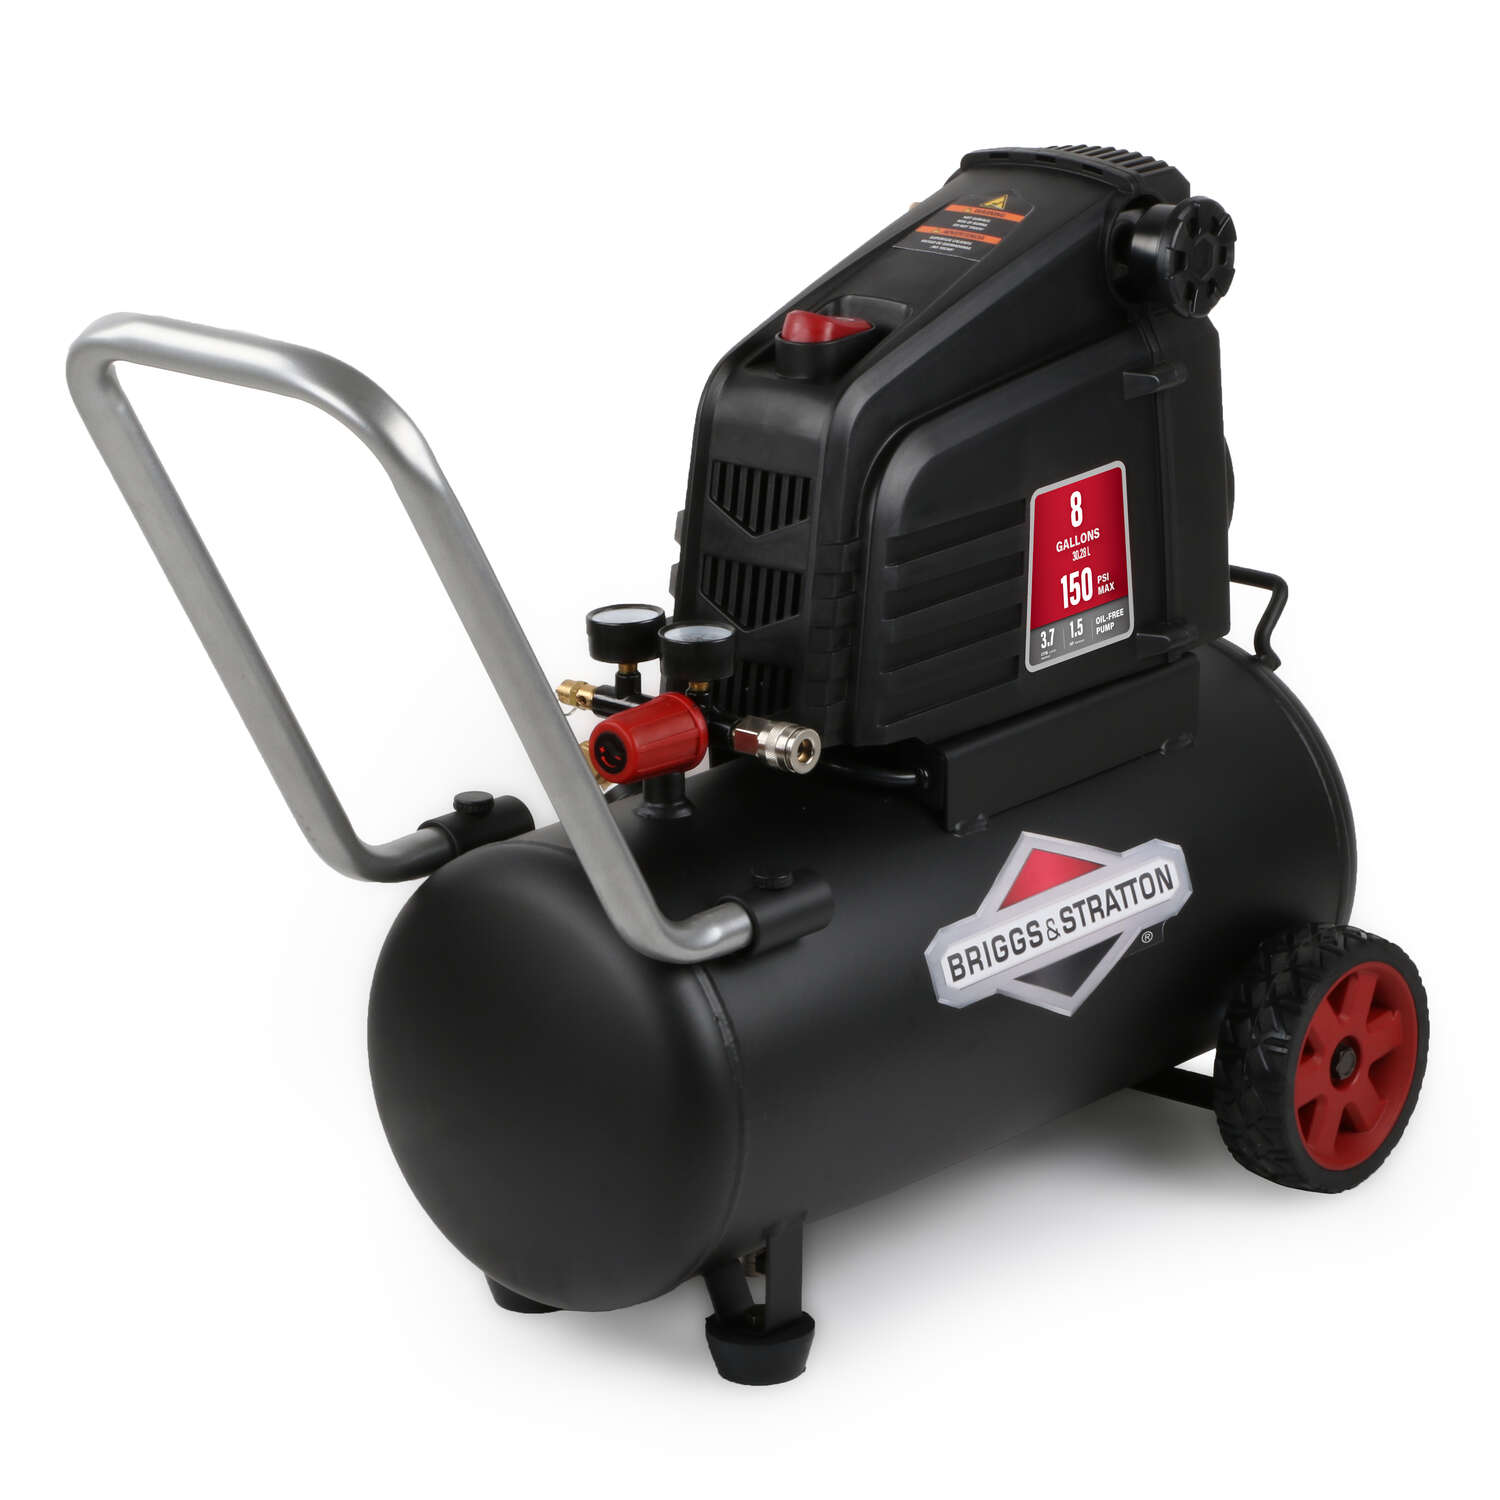 Briggs & Stratton  8 gal. Horizontal  Portable Air Compressor Tank  150 psi 1.5 hp